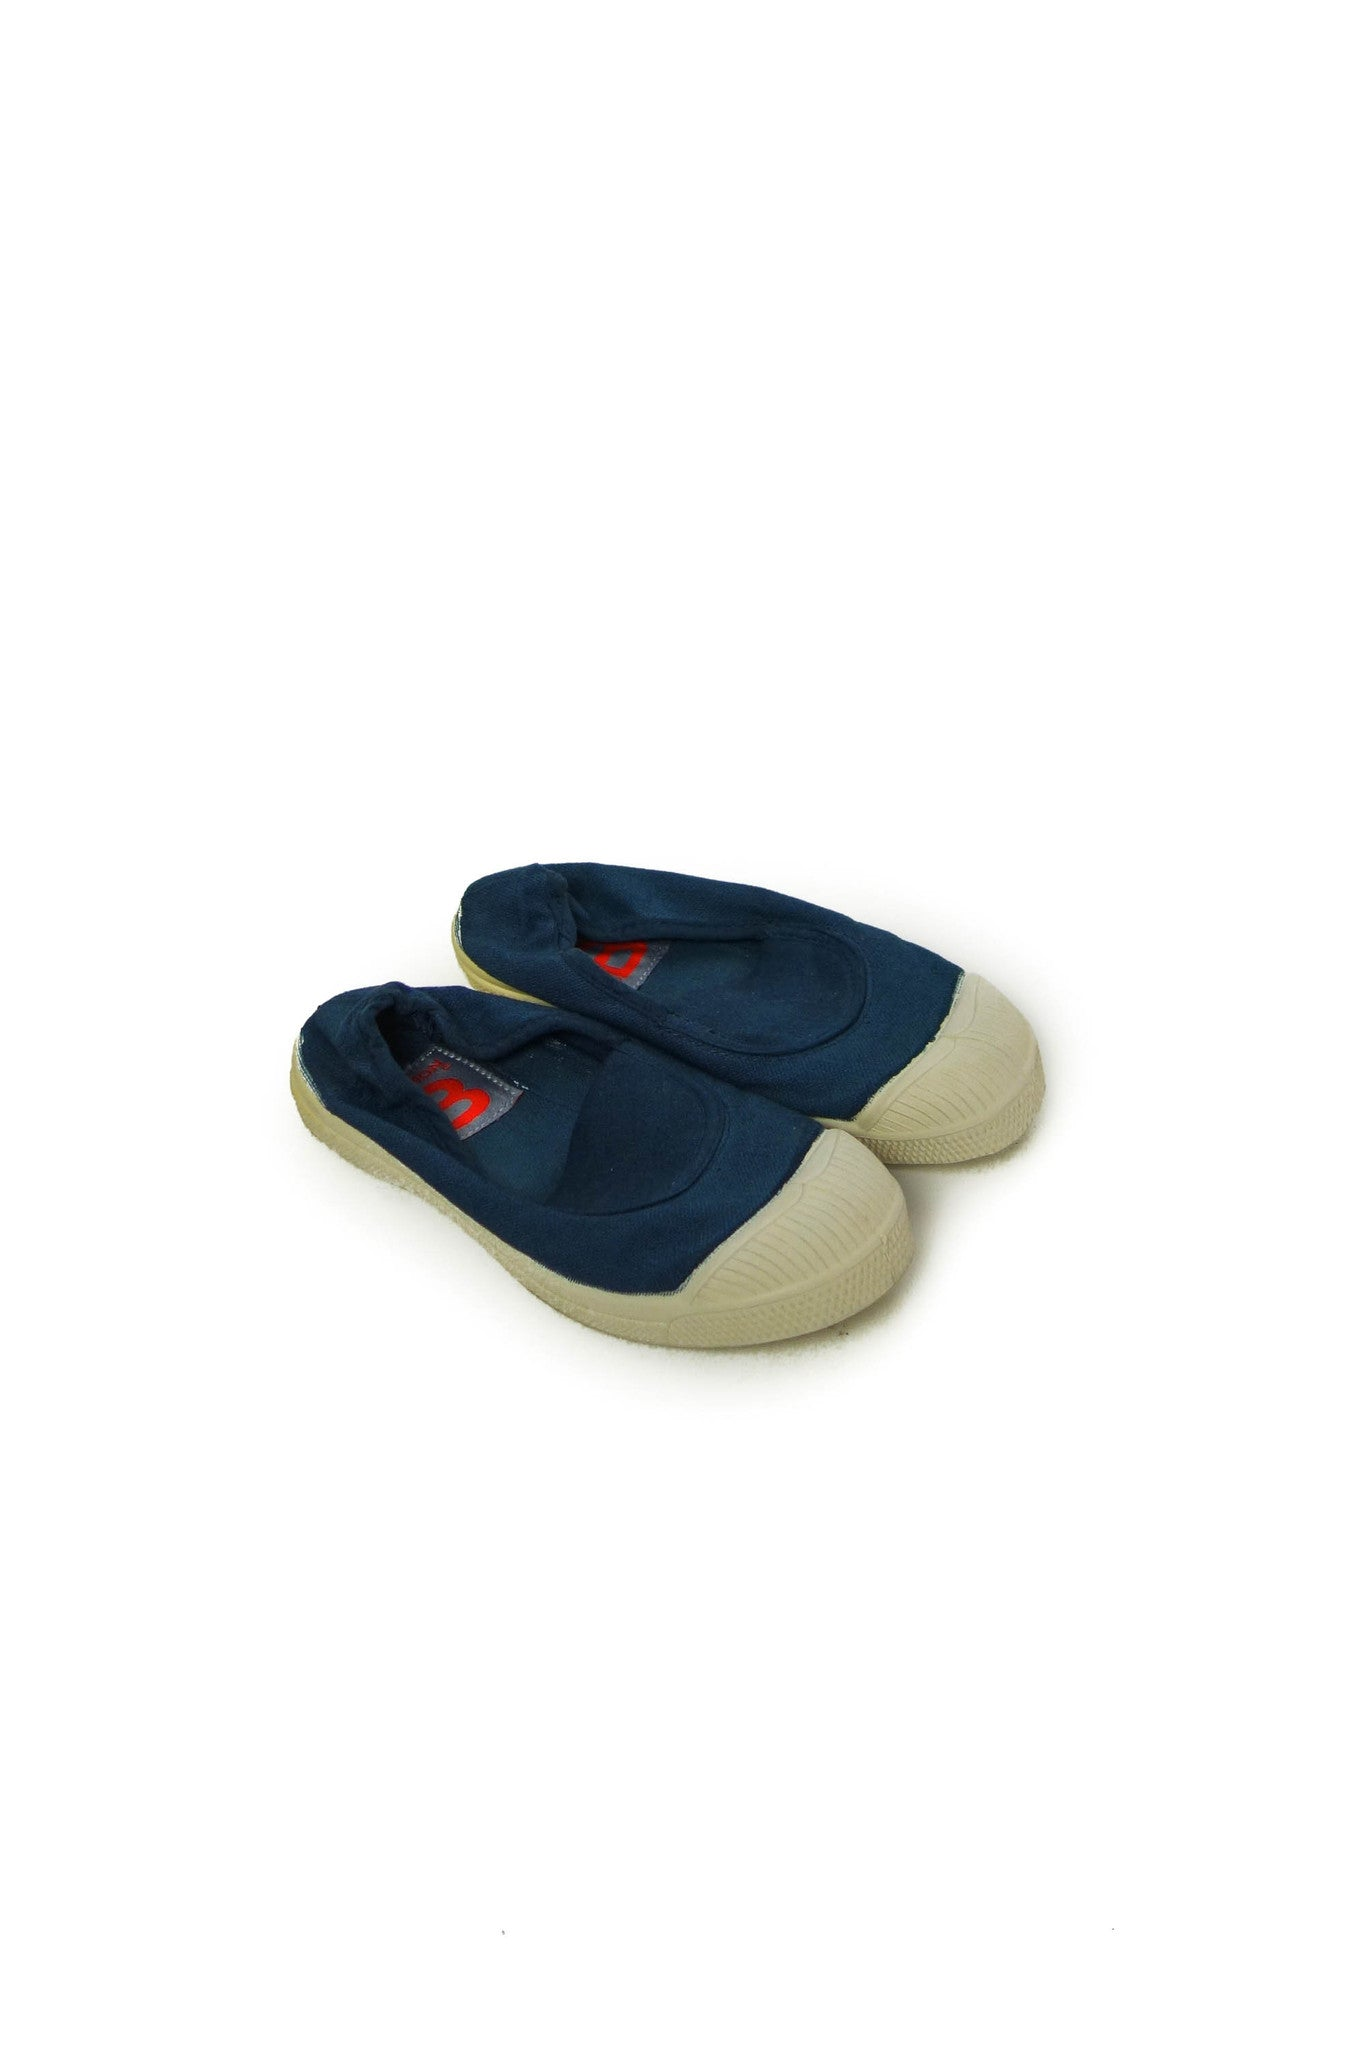 10003327 Bensimon Kids~Shoes 5T (EU 28) at Retykle